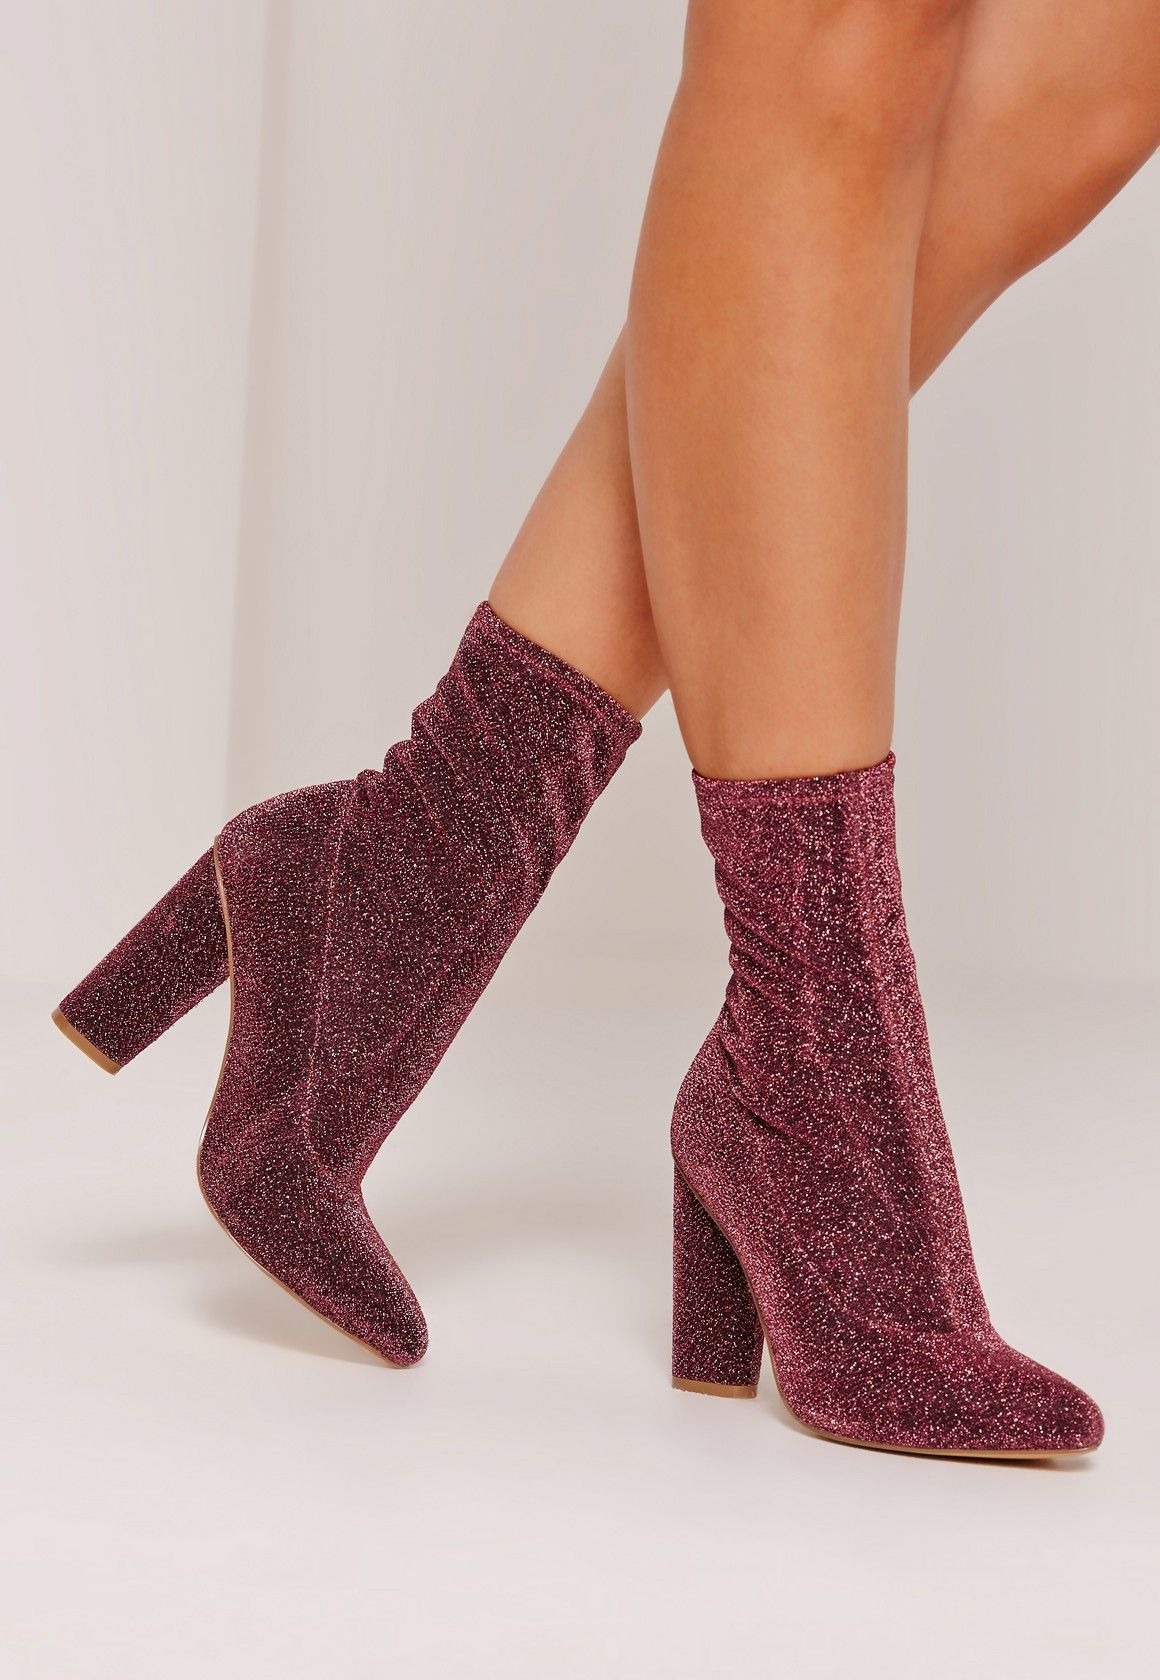 Throw it back to the 90s in these glitter sock boots in a rose pink hue